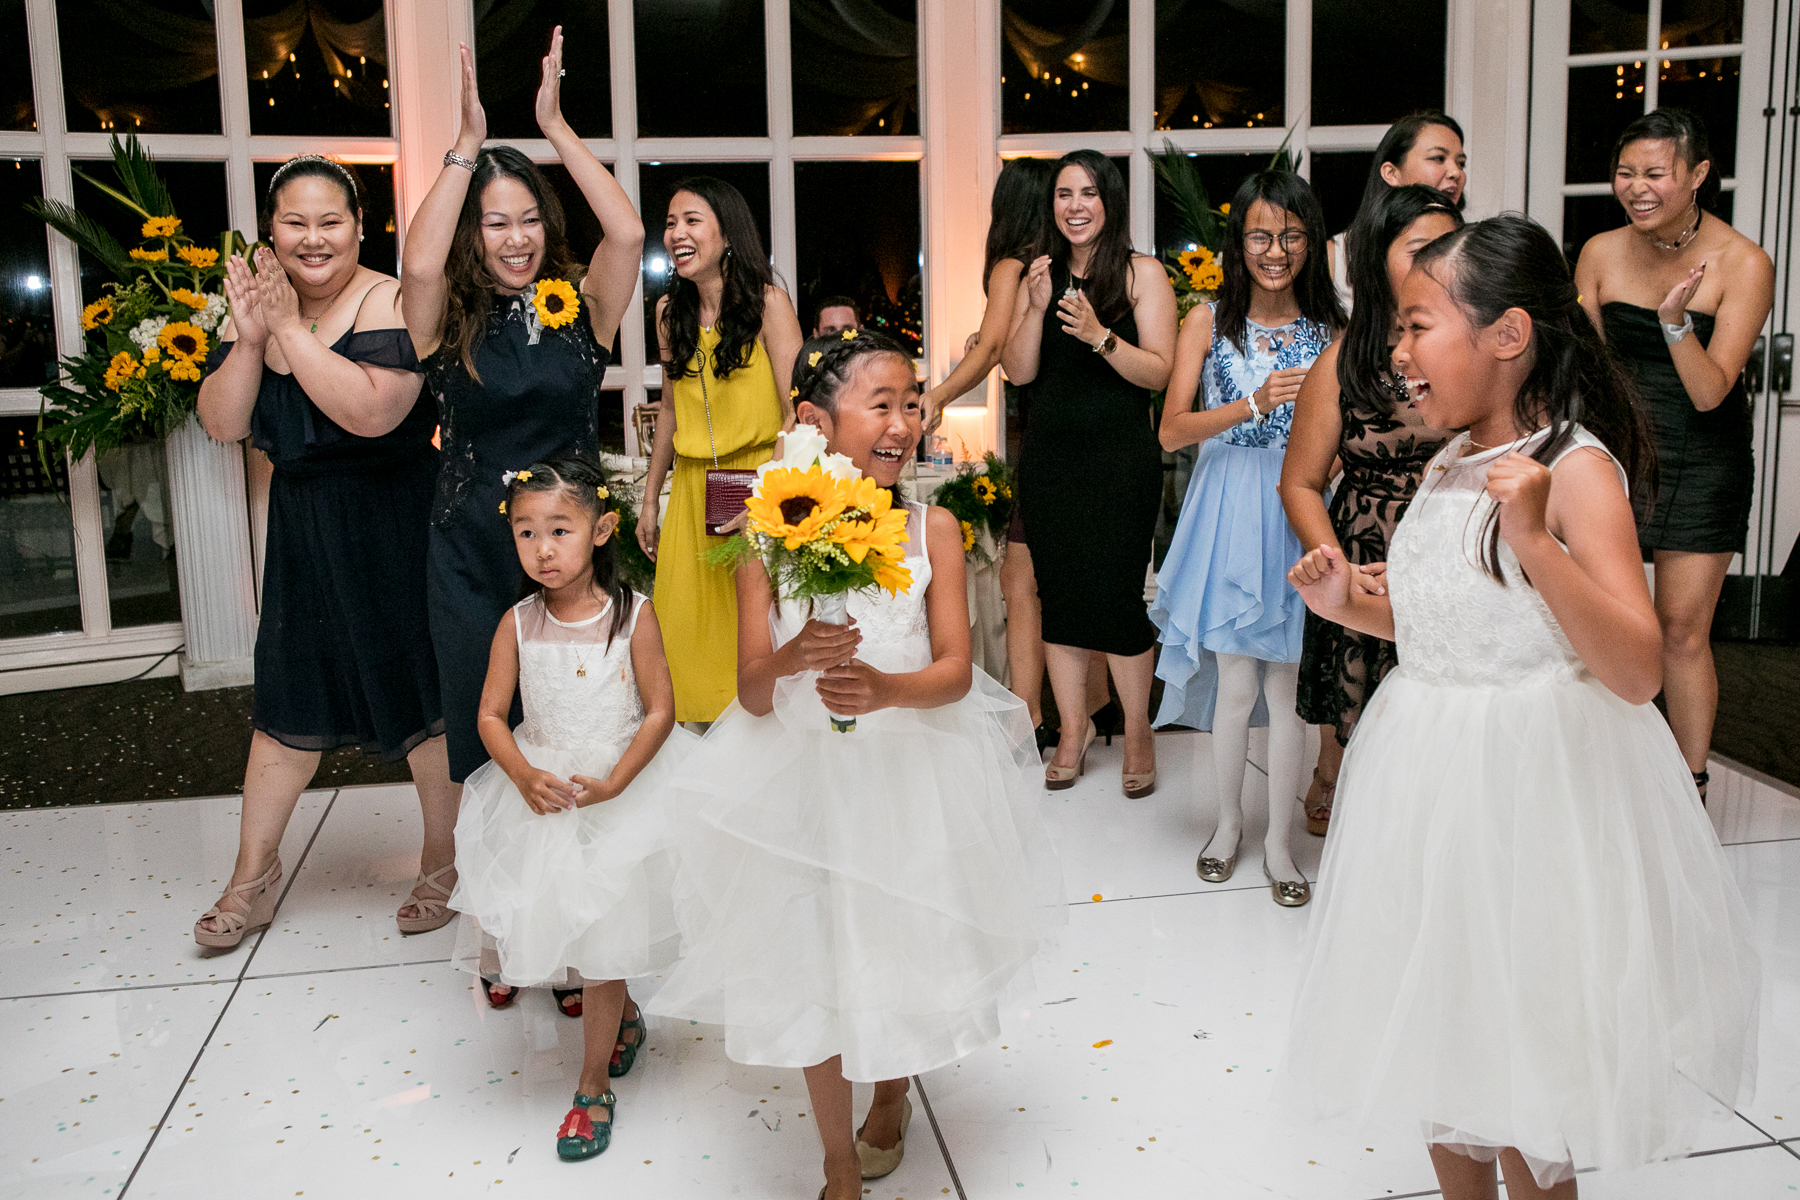 flower girl catches bridal bouquet at wedding reception at summit house fullerton